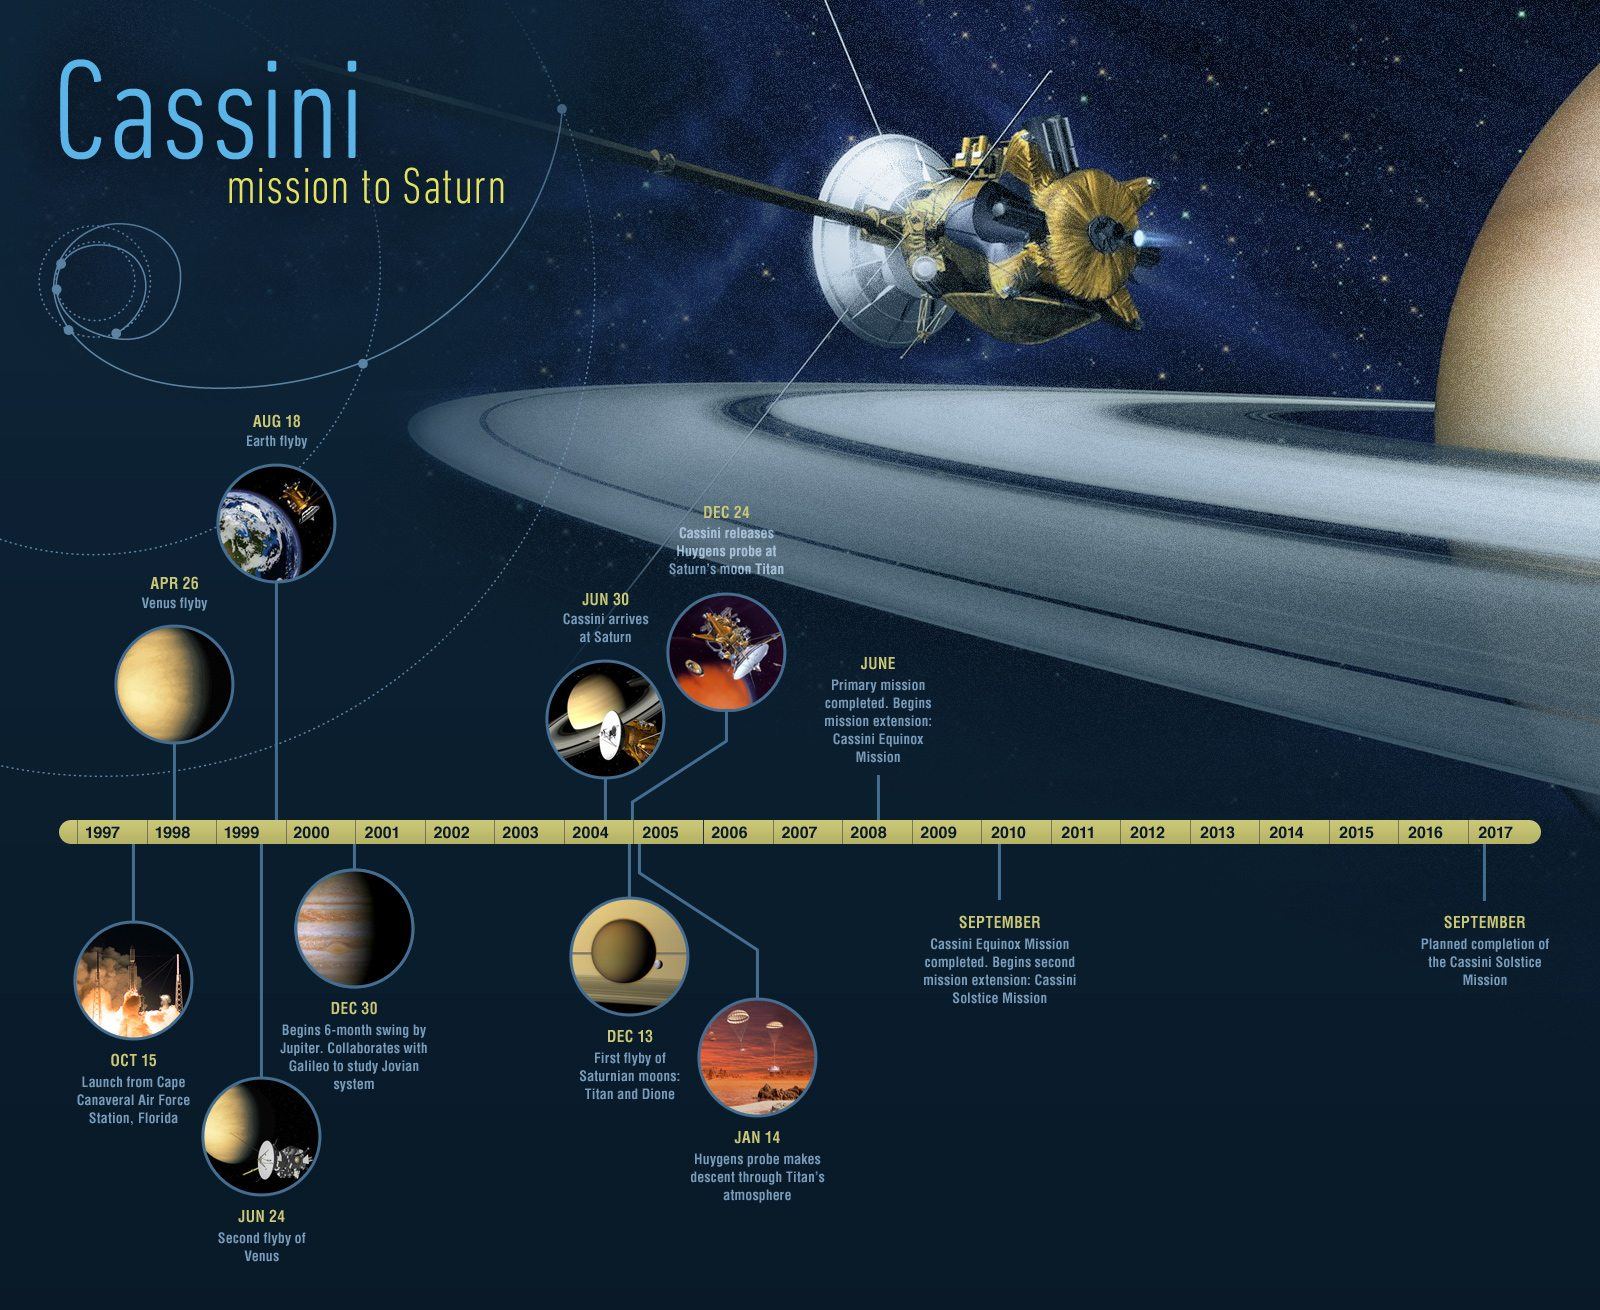 Image: NASA's timeline for Cassini's accomplishments